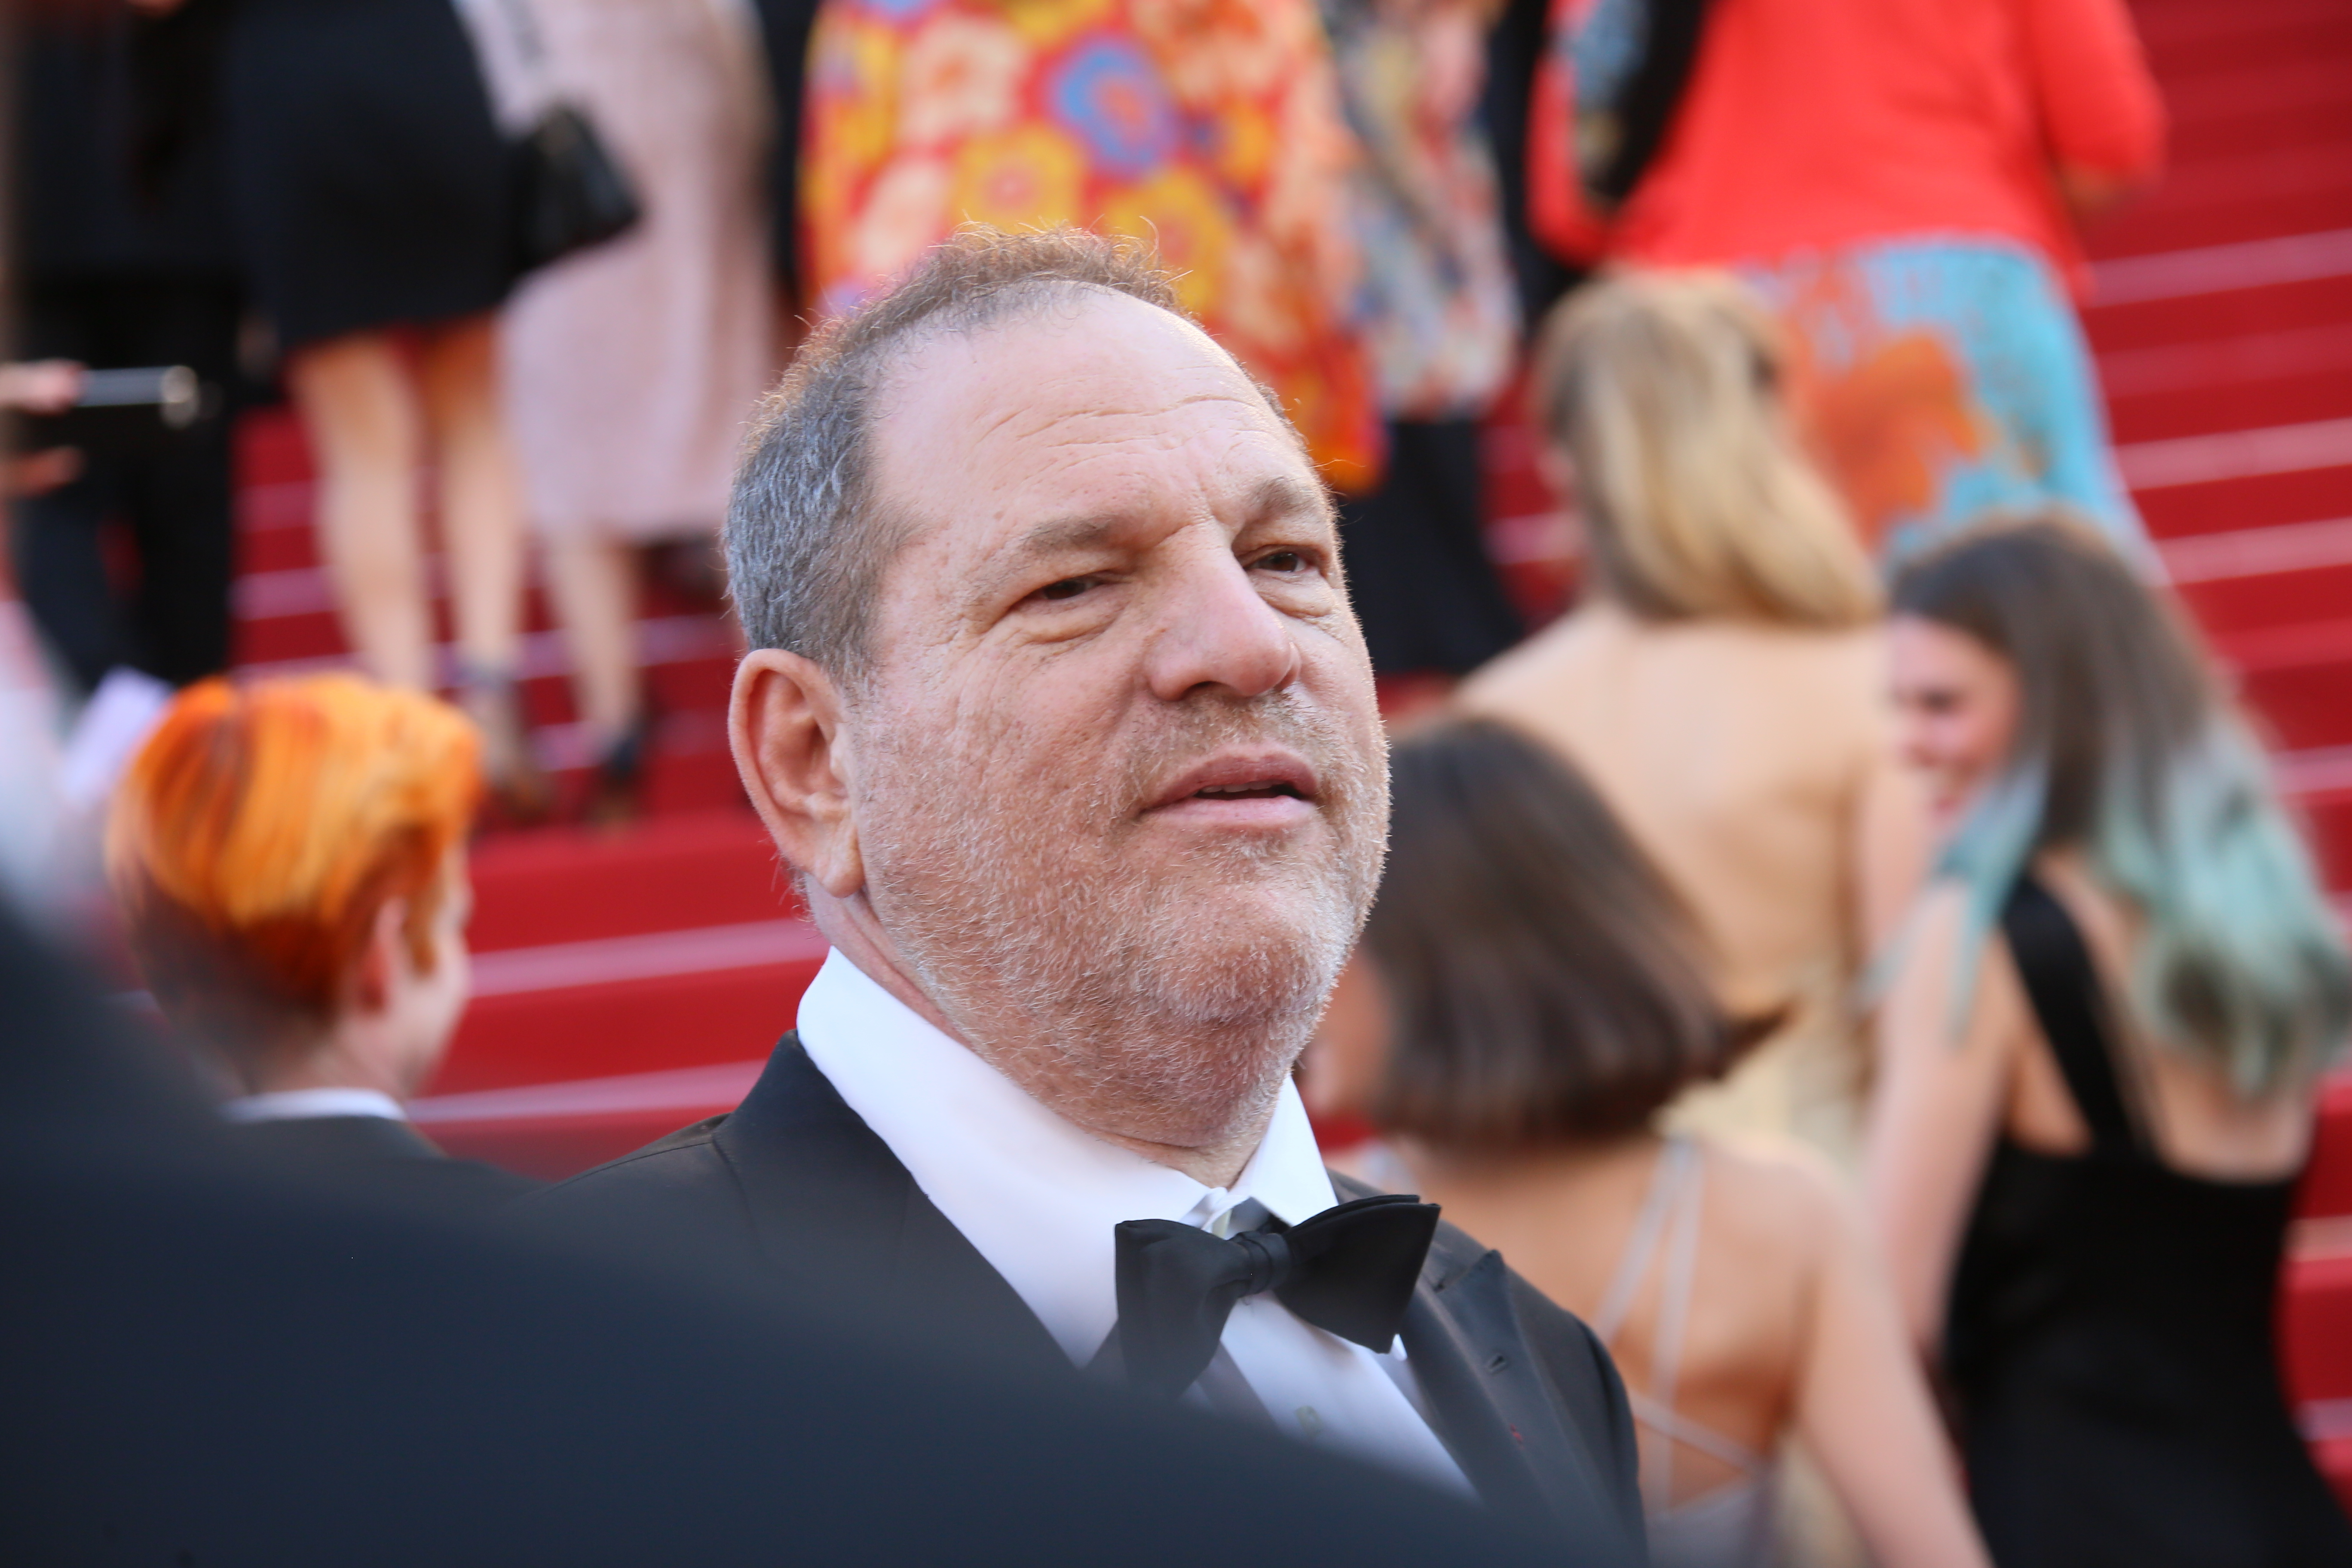 Harvey Weinstein's casting couch has seated more arses than a Debenhams Santa